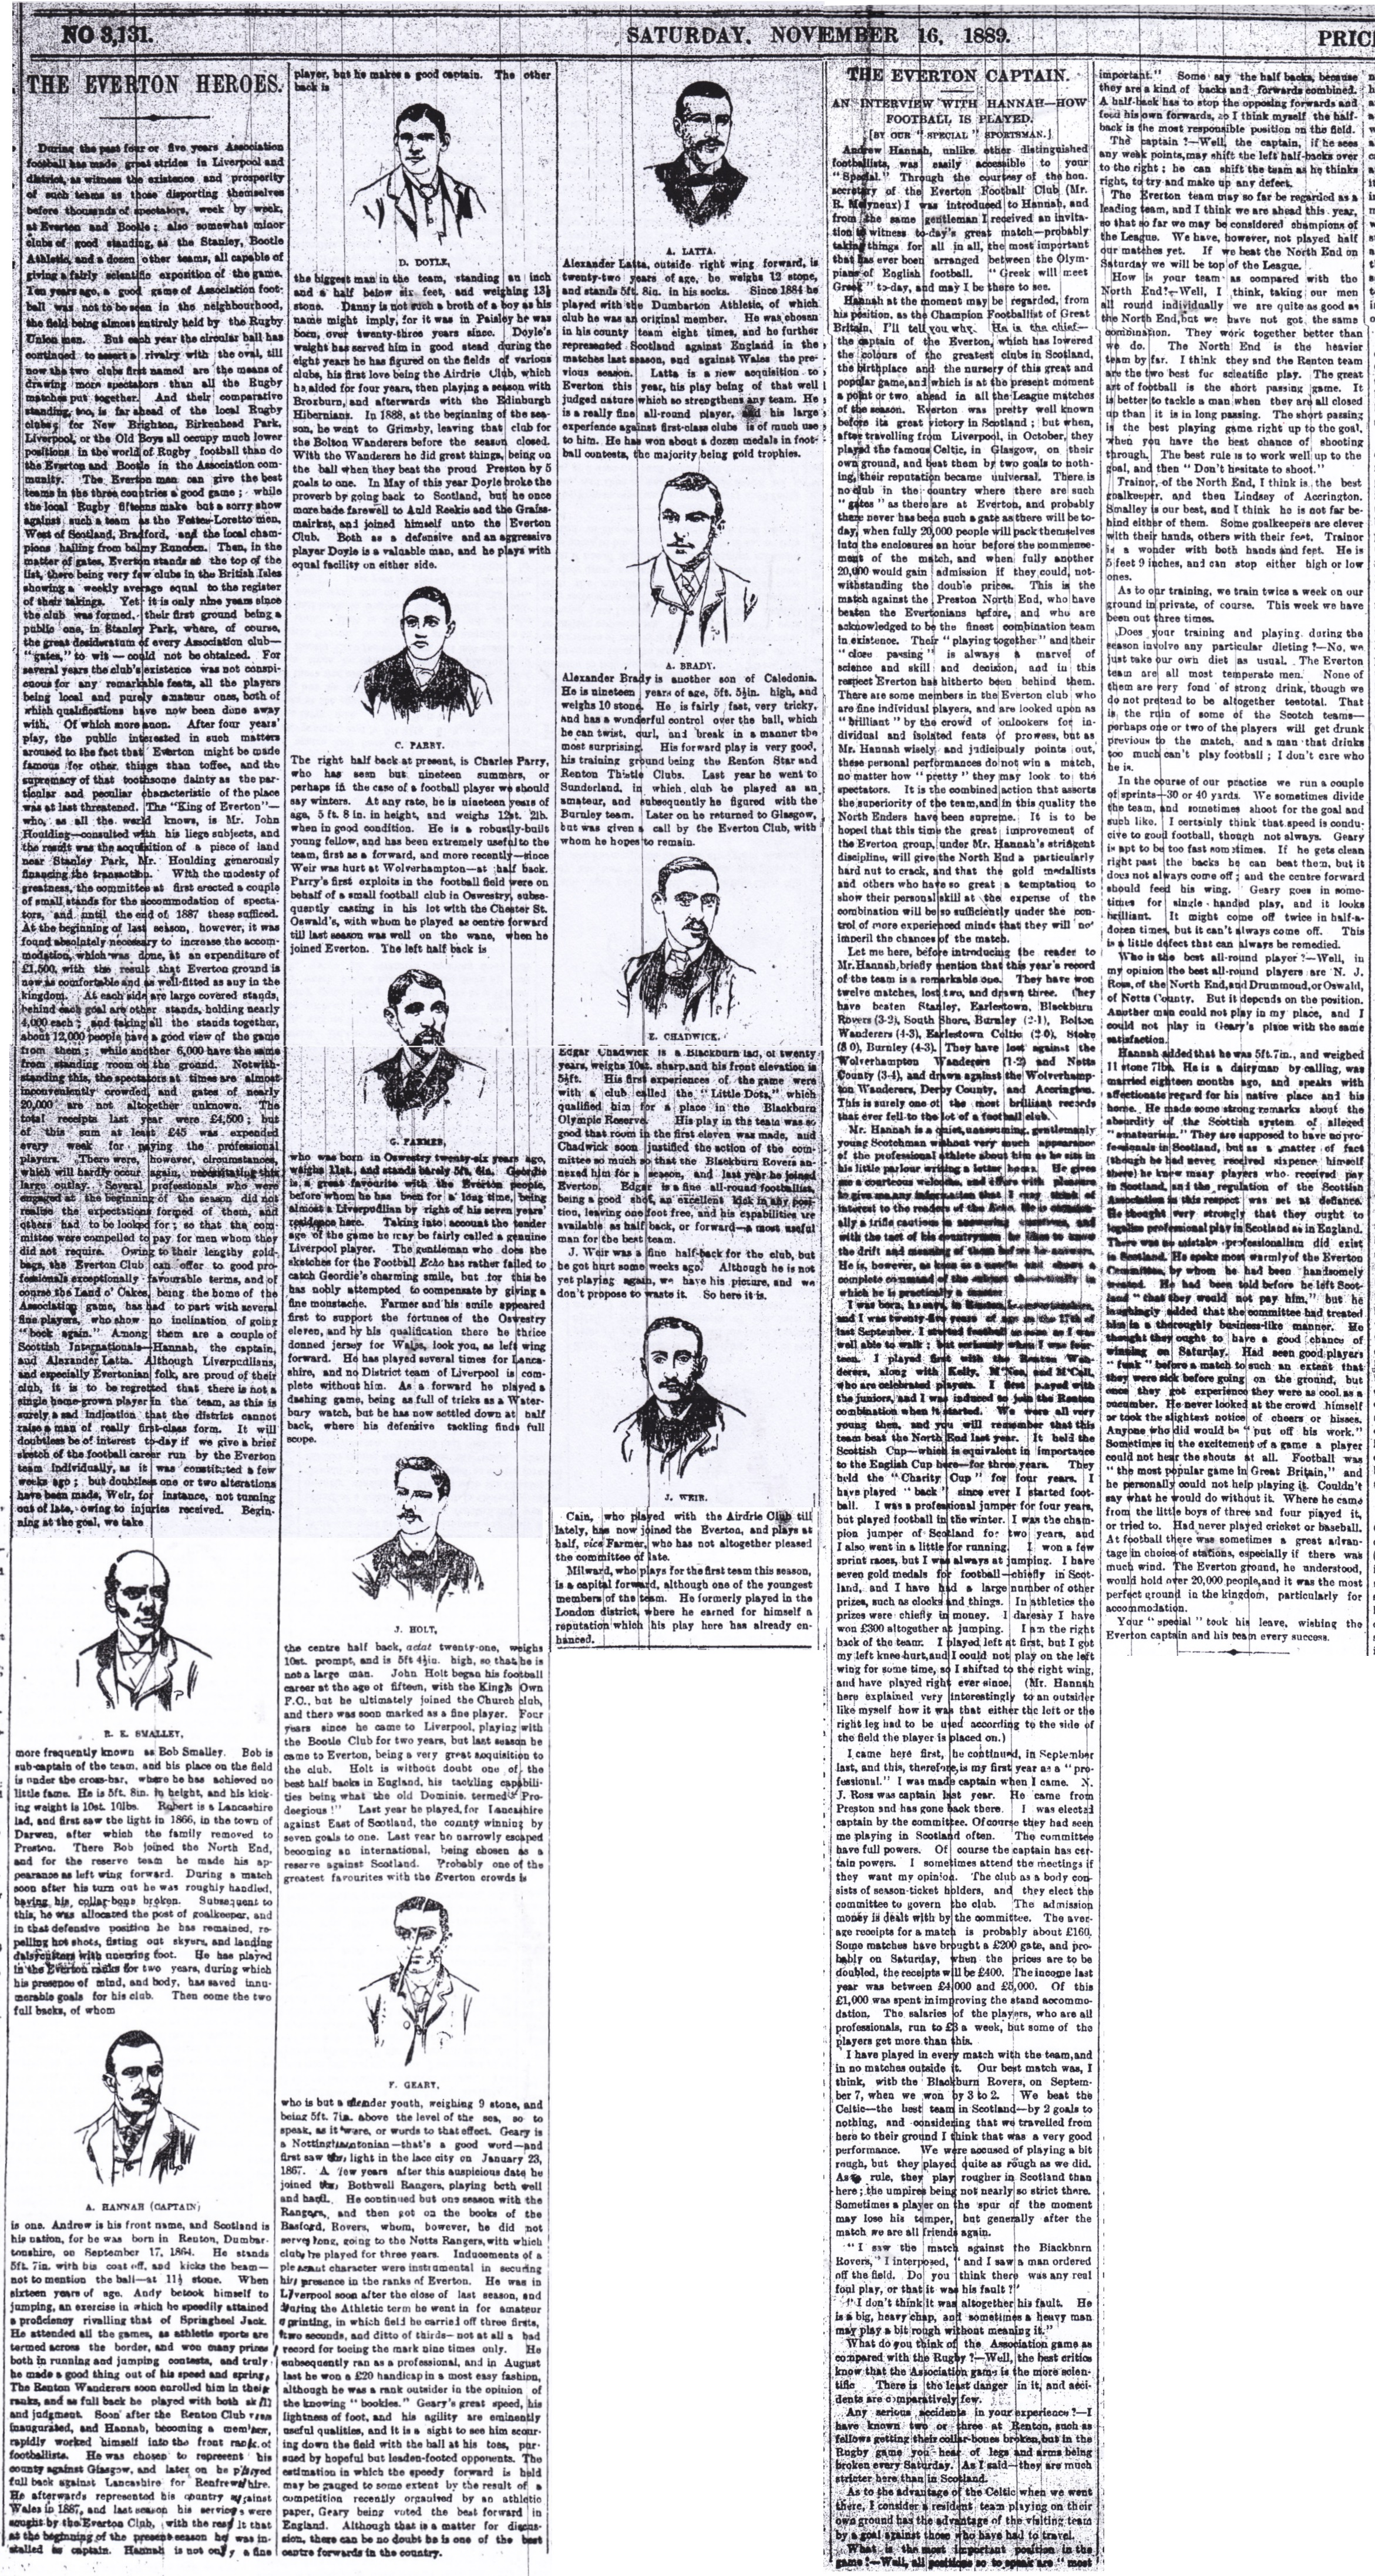 Everton and Chadwick in profile in 1889!